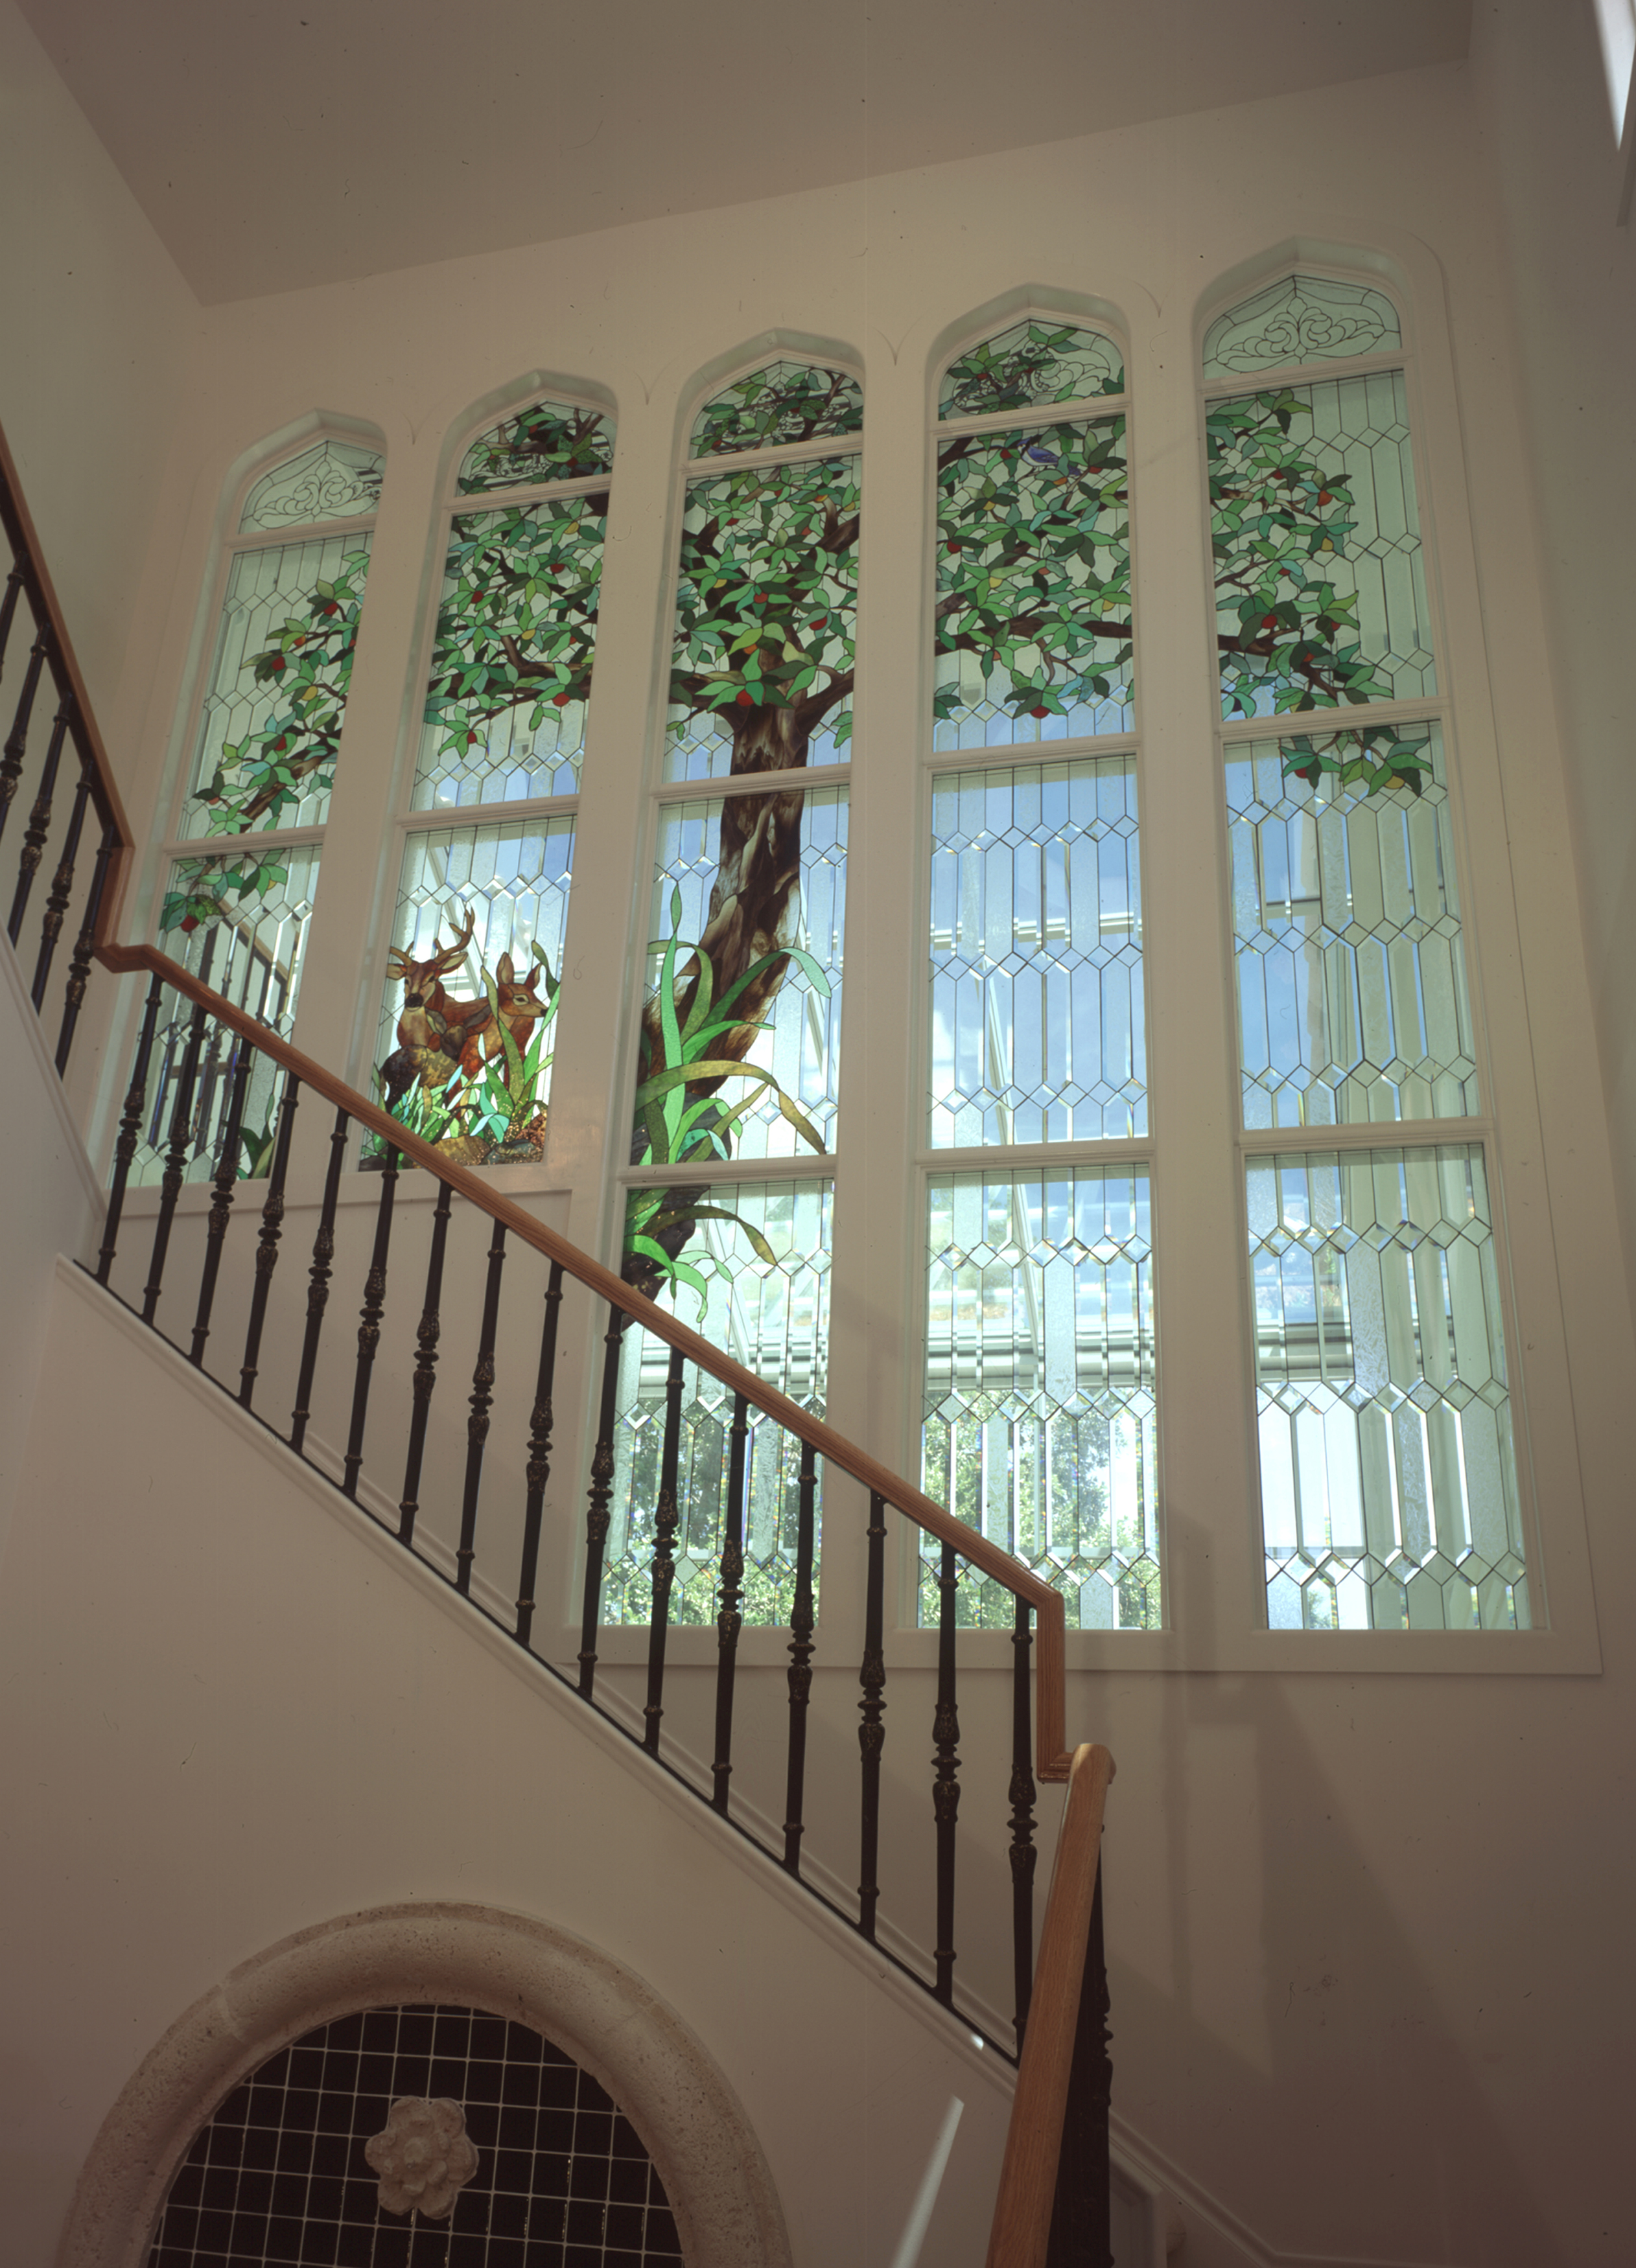 An original set of windows by PRESTON STUDIOS